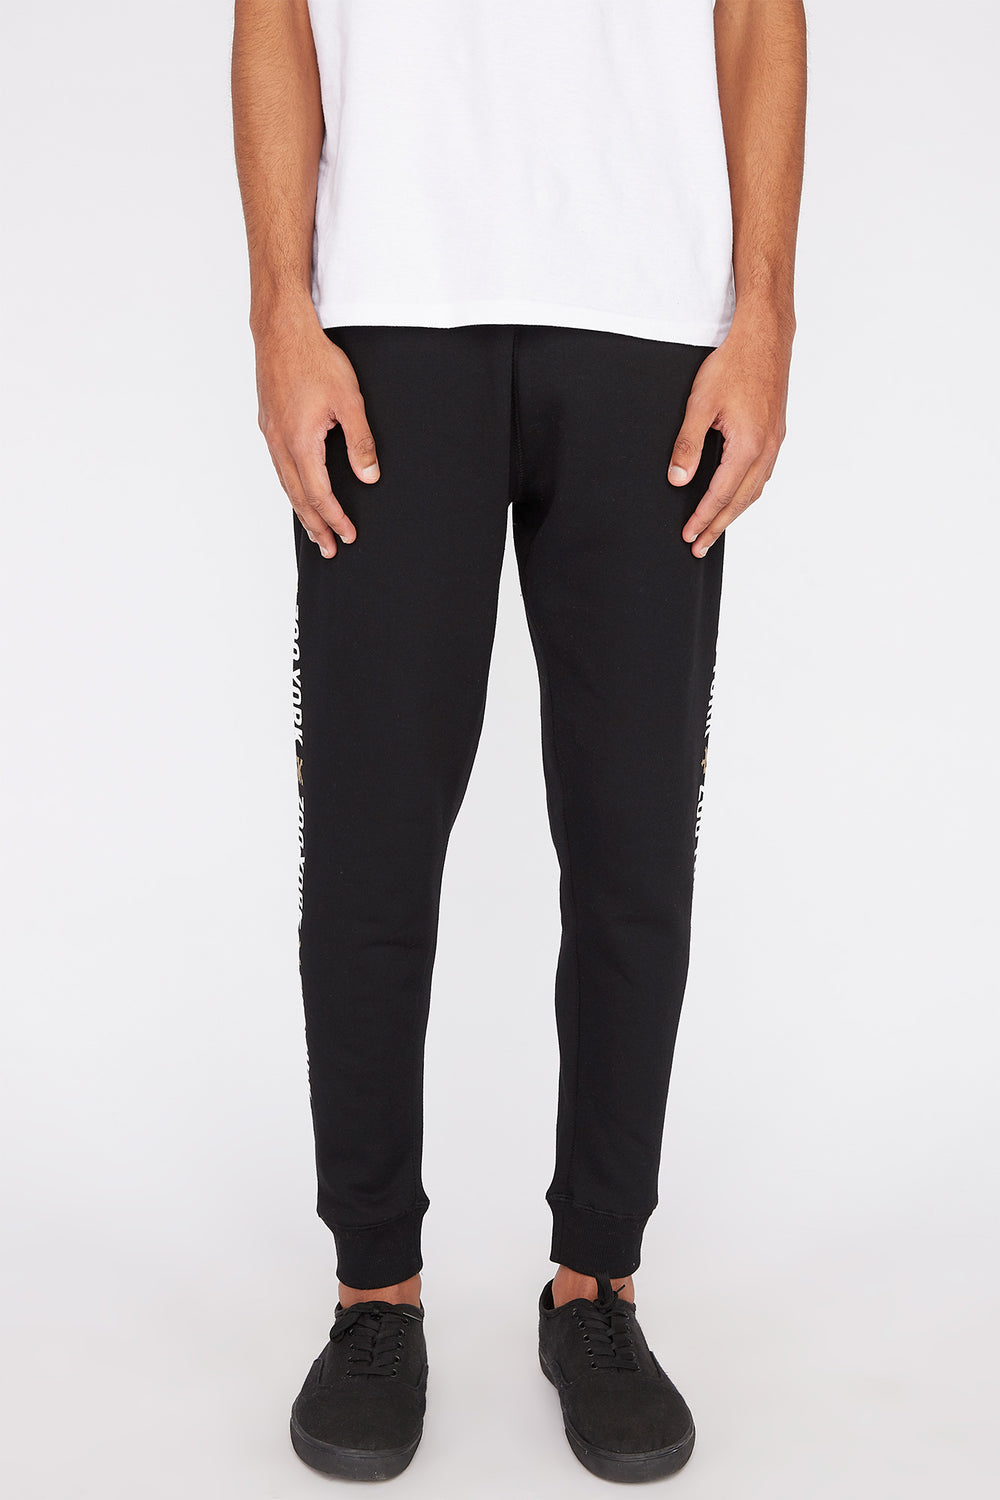 Zoo York Mens Basic Logo Jogger Black